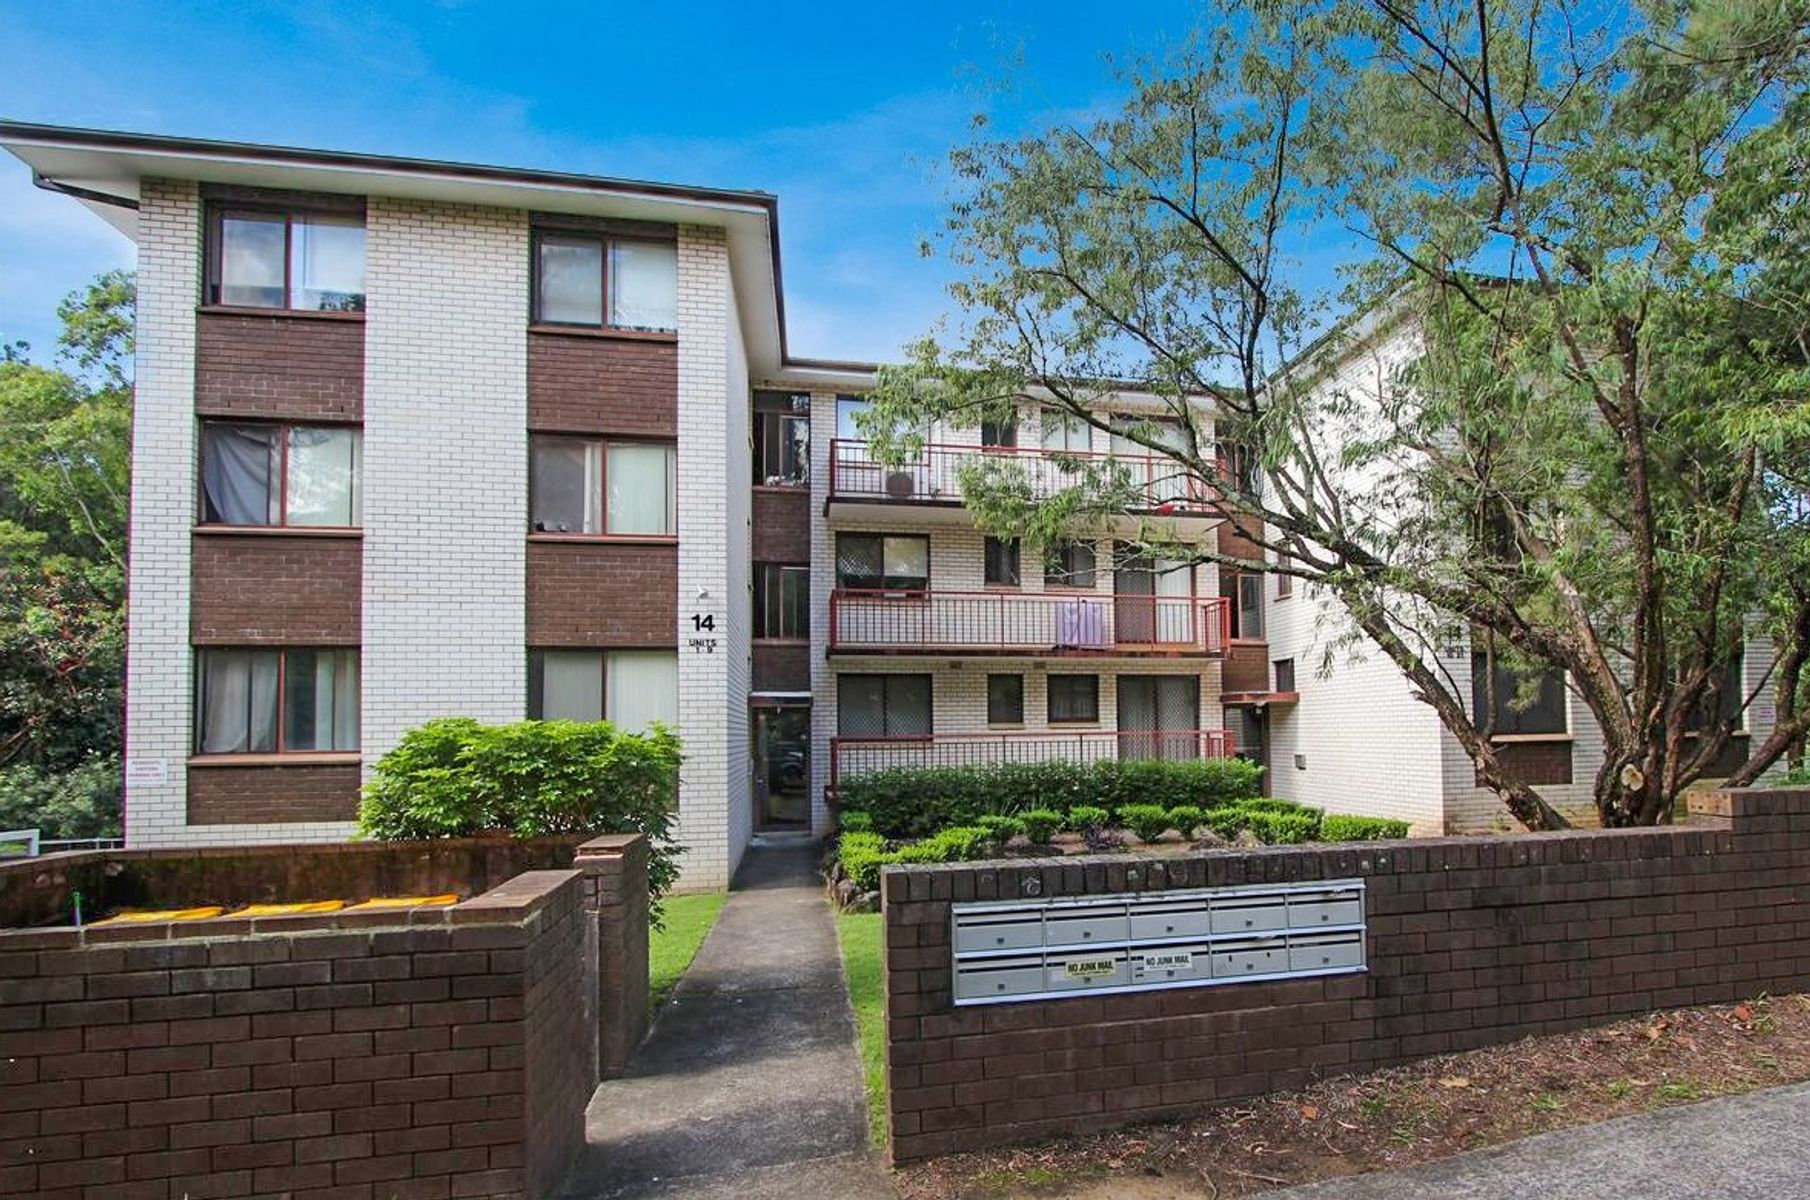 5/18-14  Cottonwood Crescent, Macquarie Park, NSW 2113